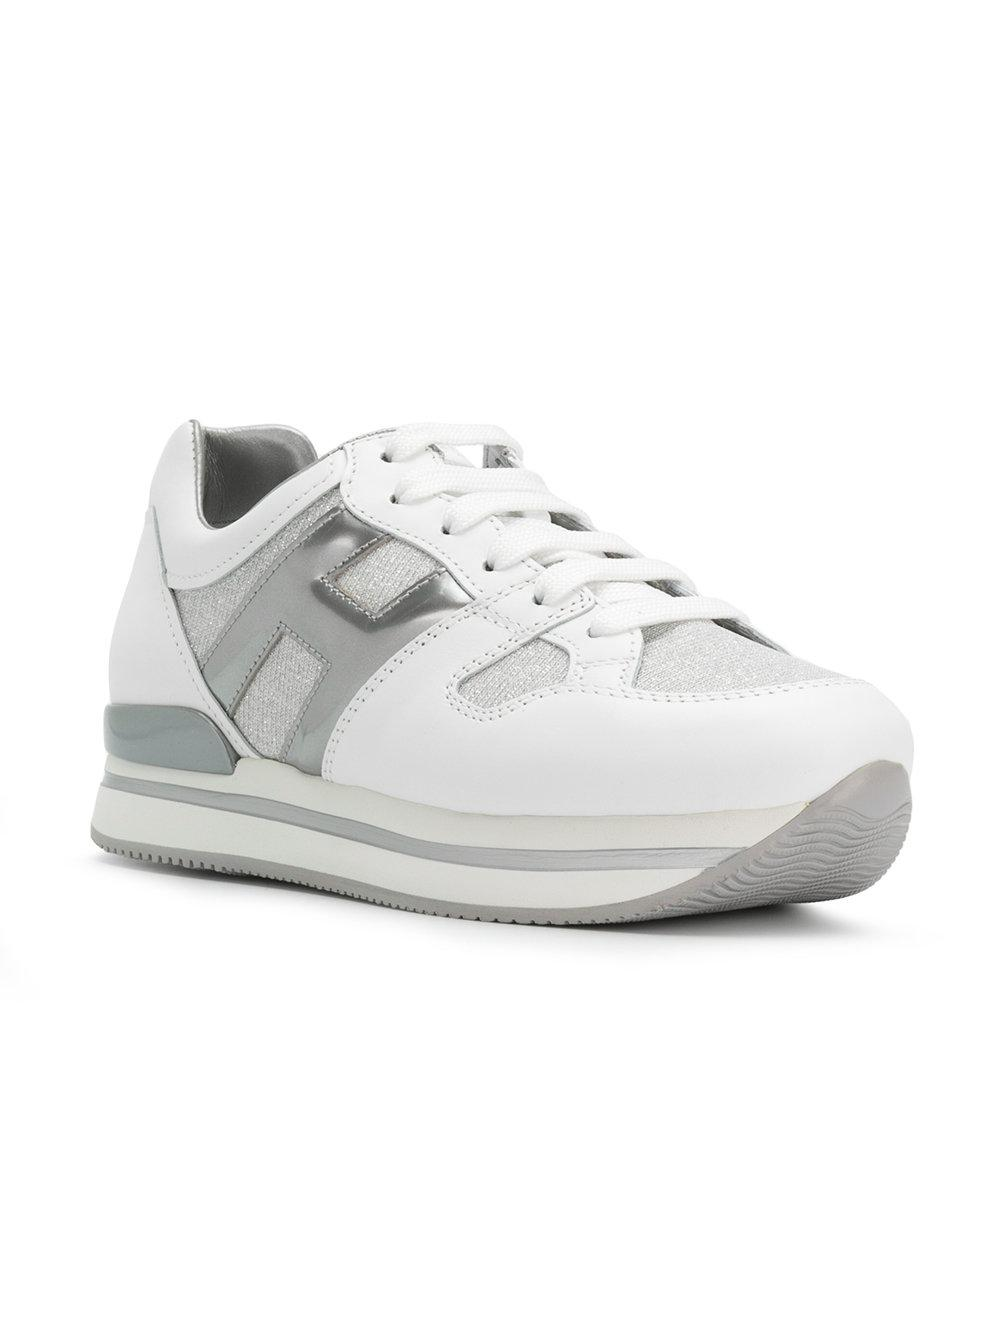 clearance explore eastbay cheap price Hogan H logo sneakers cheap sale real i5OViR